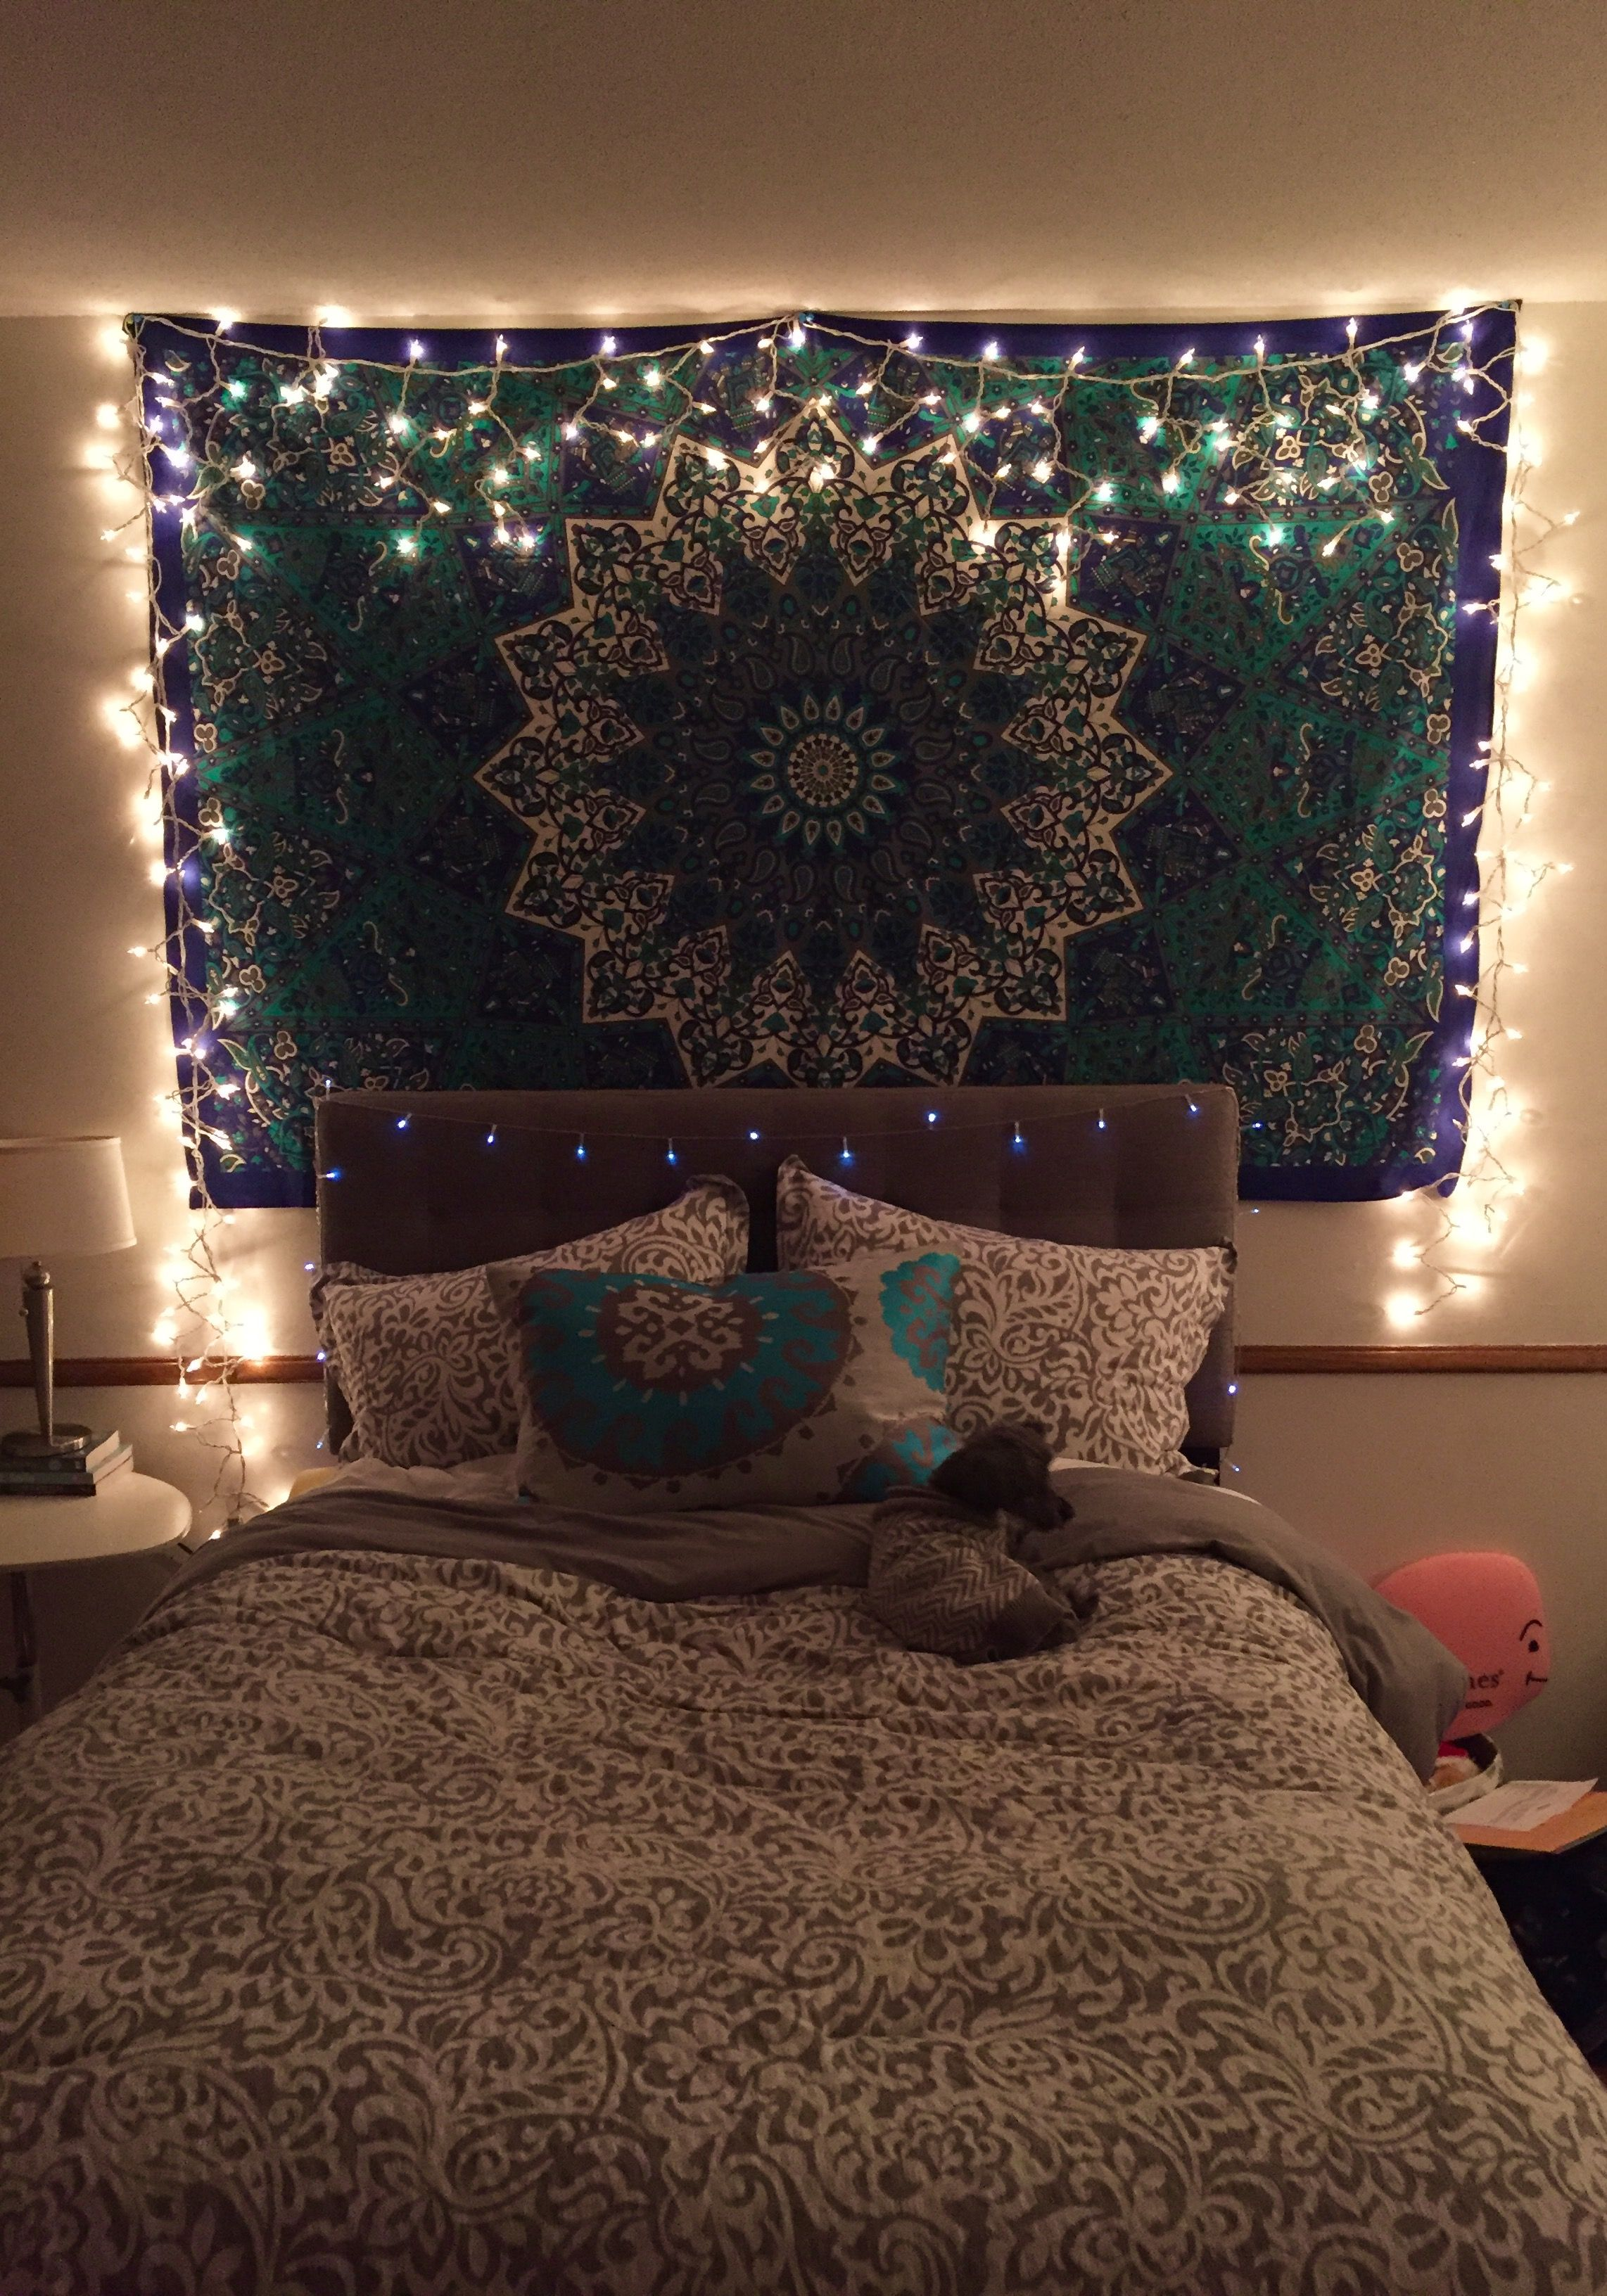 icicle lights in bedroom tapestry with icicle lights bedroom 집 15581